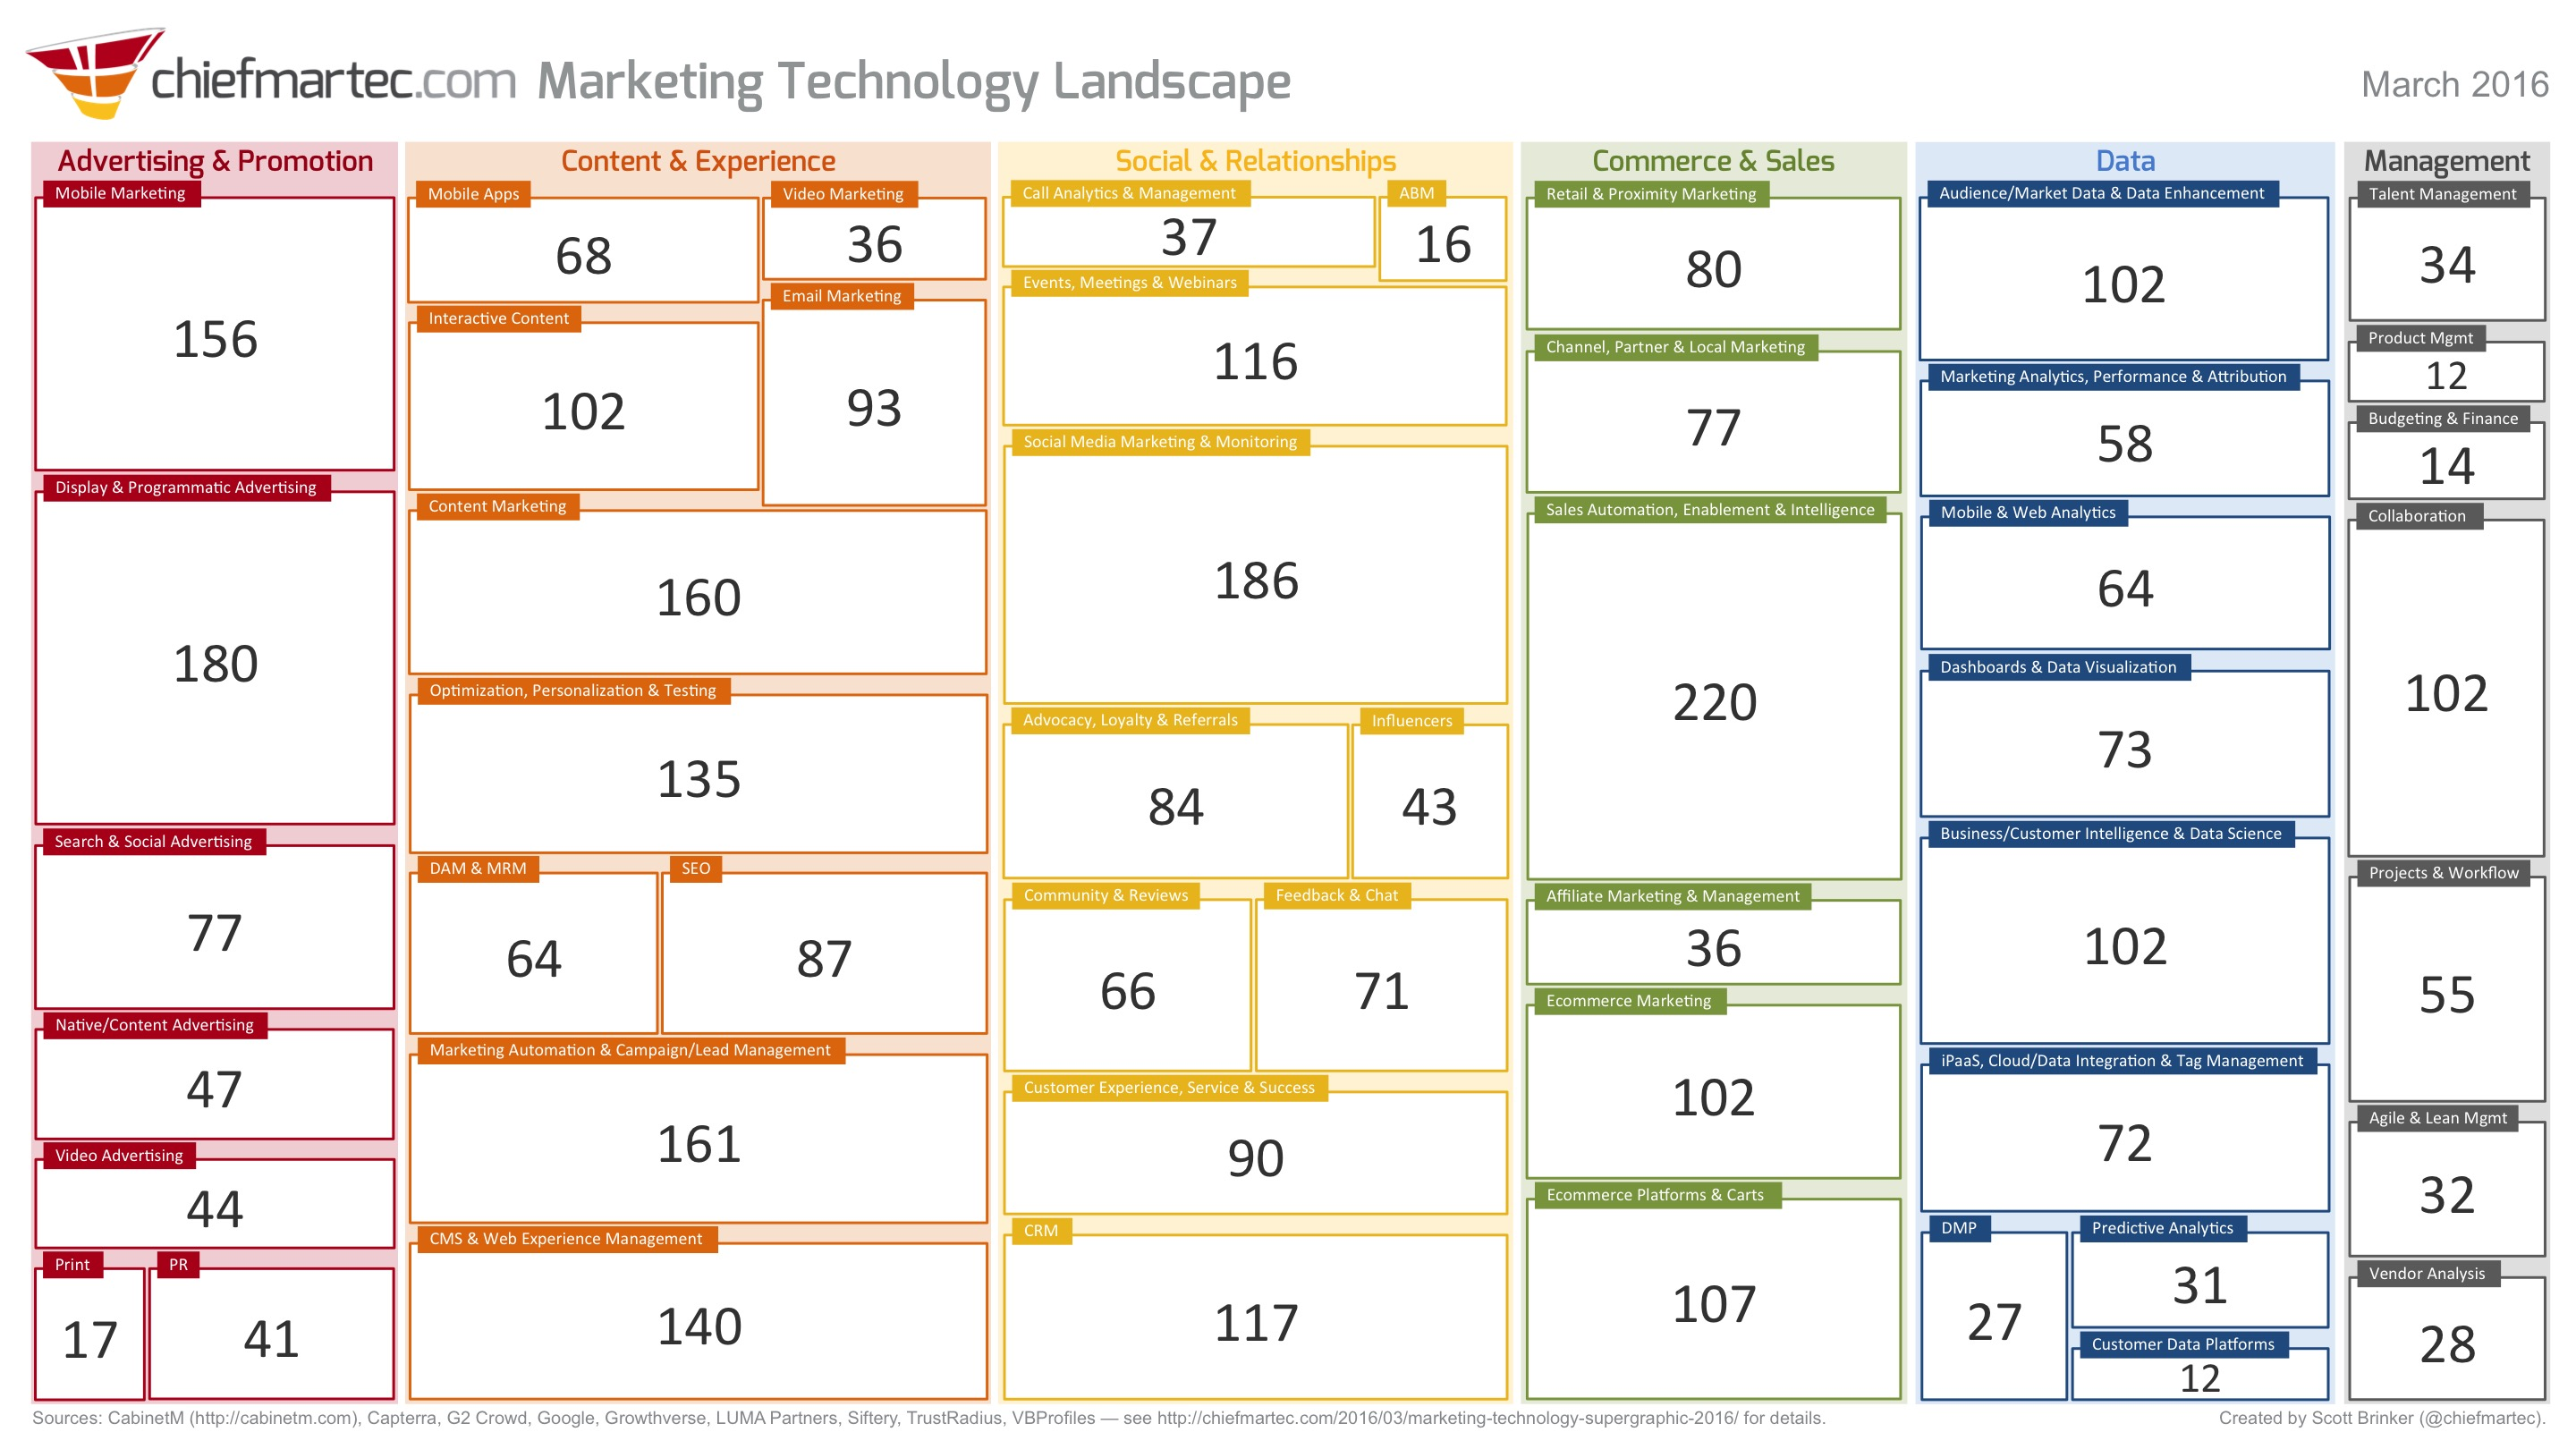 Category Counts of the Marketing Technology Landscape (2016)